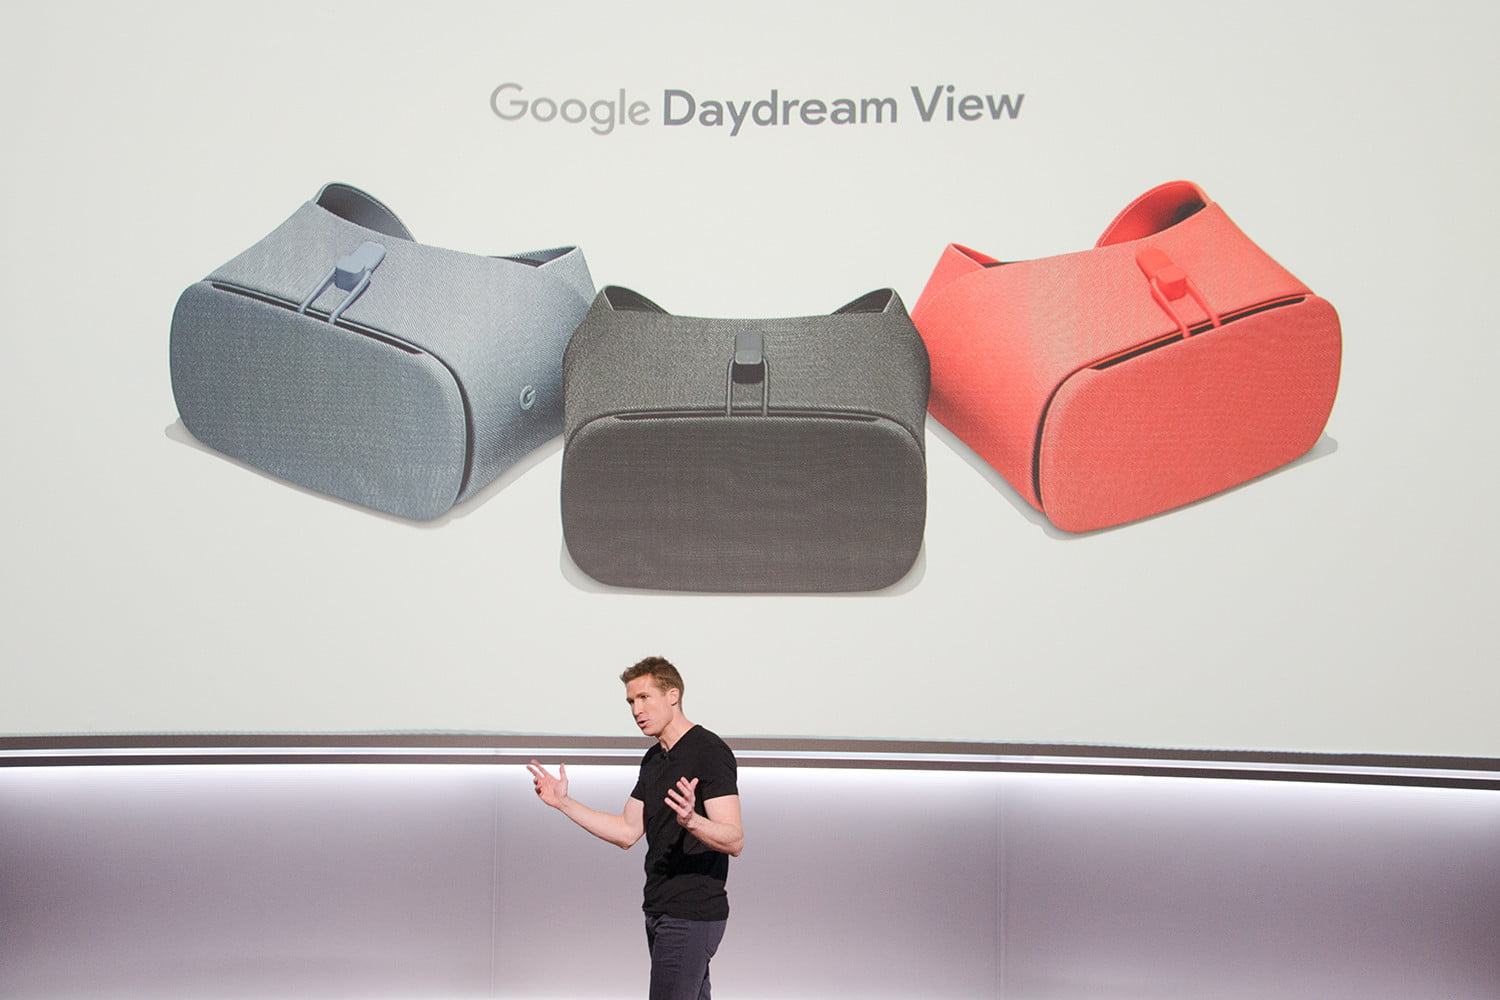 New Google Daydream View: News, Rumors, Release, and More | Digital